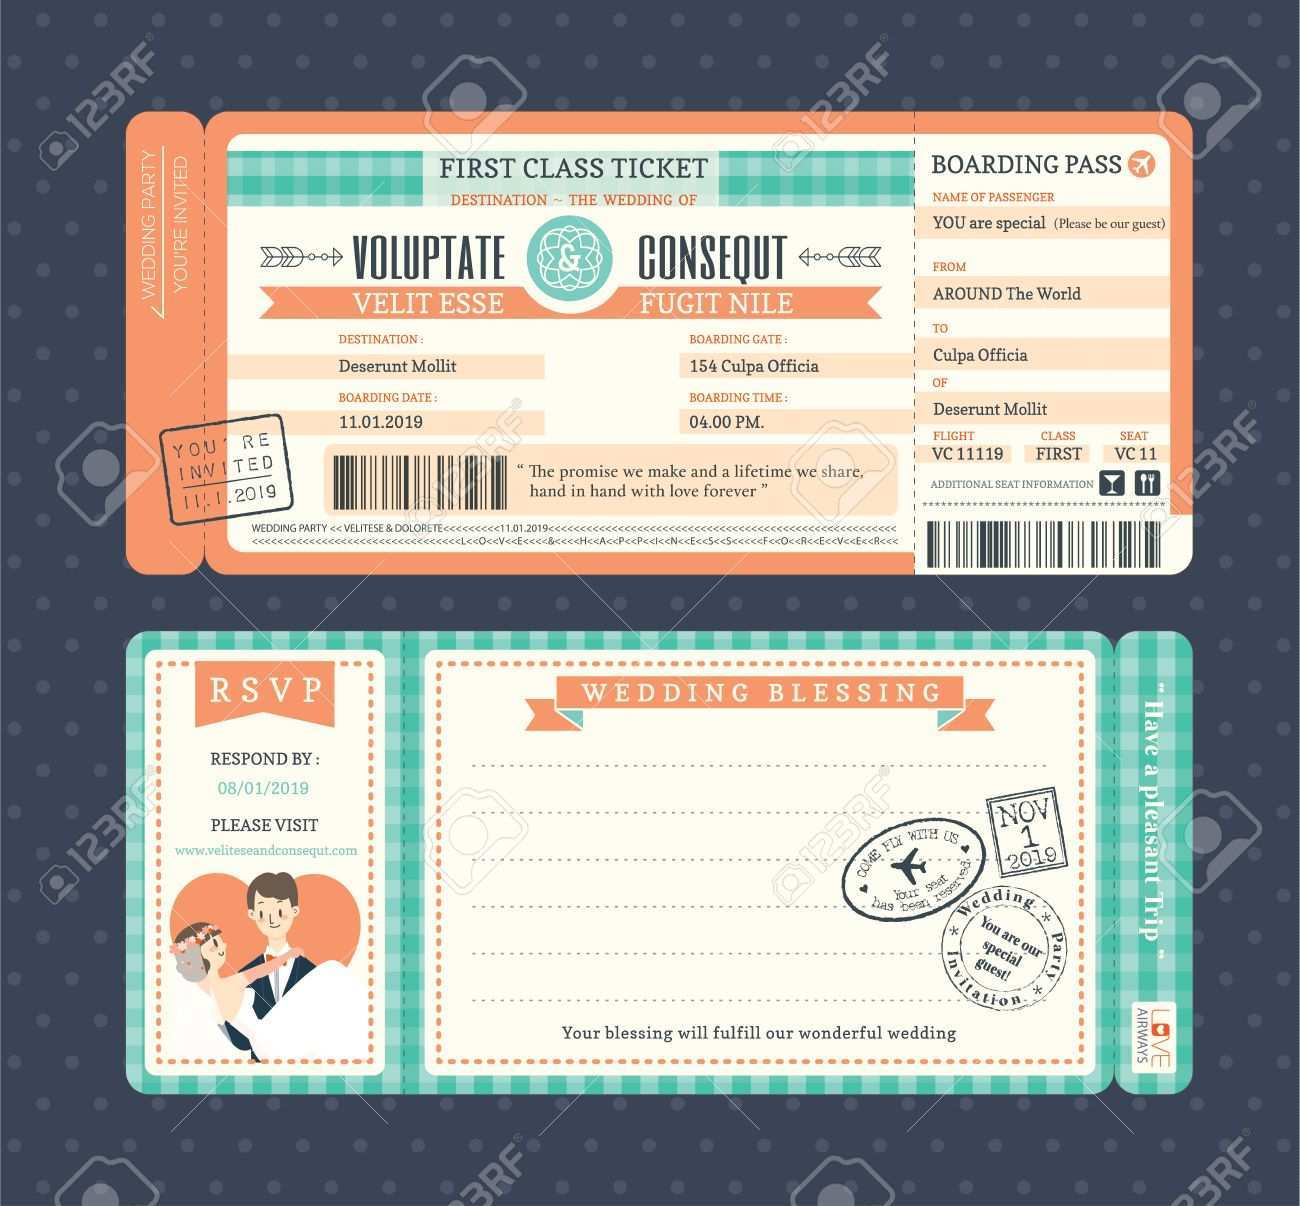 94 Customize Wedding Invitation Ticket Template Vector Free Download With Stunning Design by Wedding Invitation Ticket Template Vector Free Download